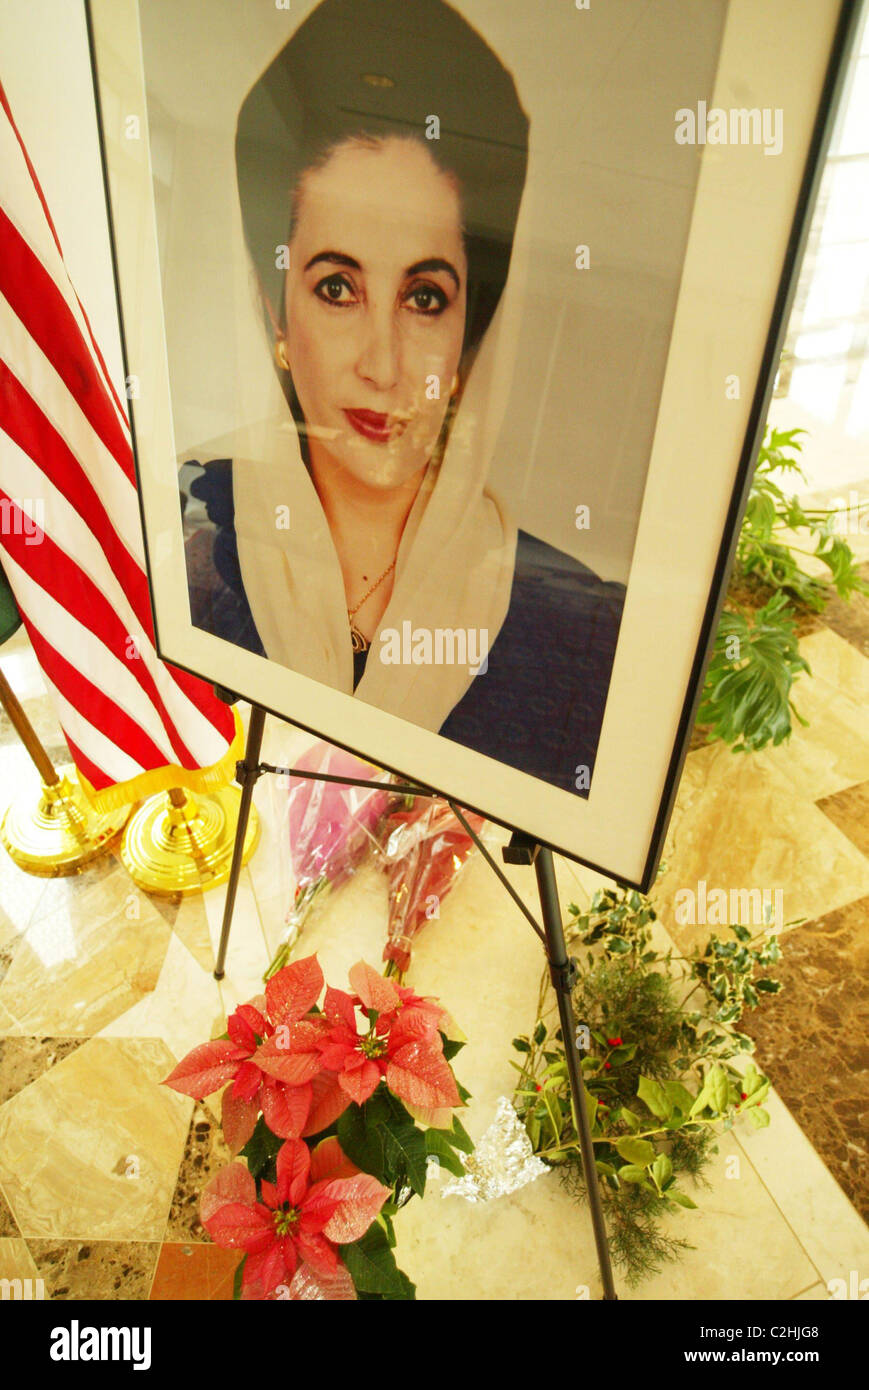 Tribute book signing to Benazir Bhutto, Prime Minister of Pakistan who was assassinated on December 27, 2007, after Stock Photo